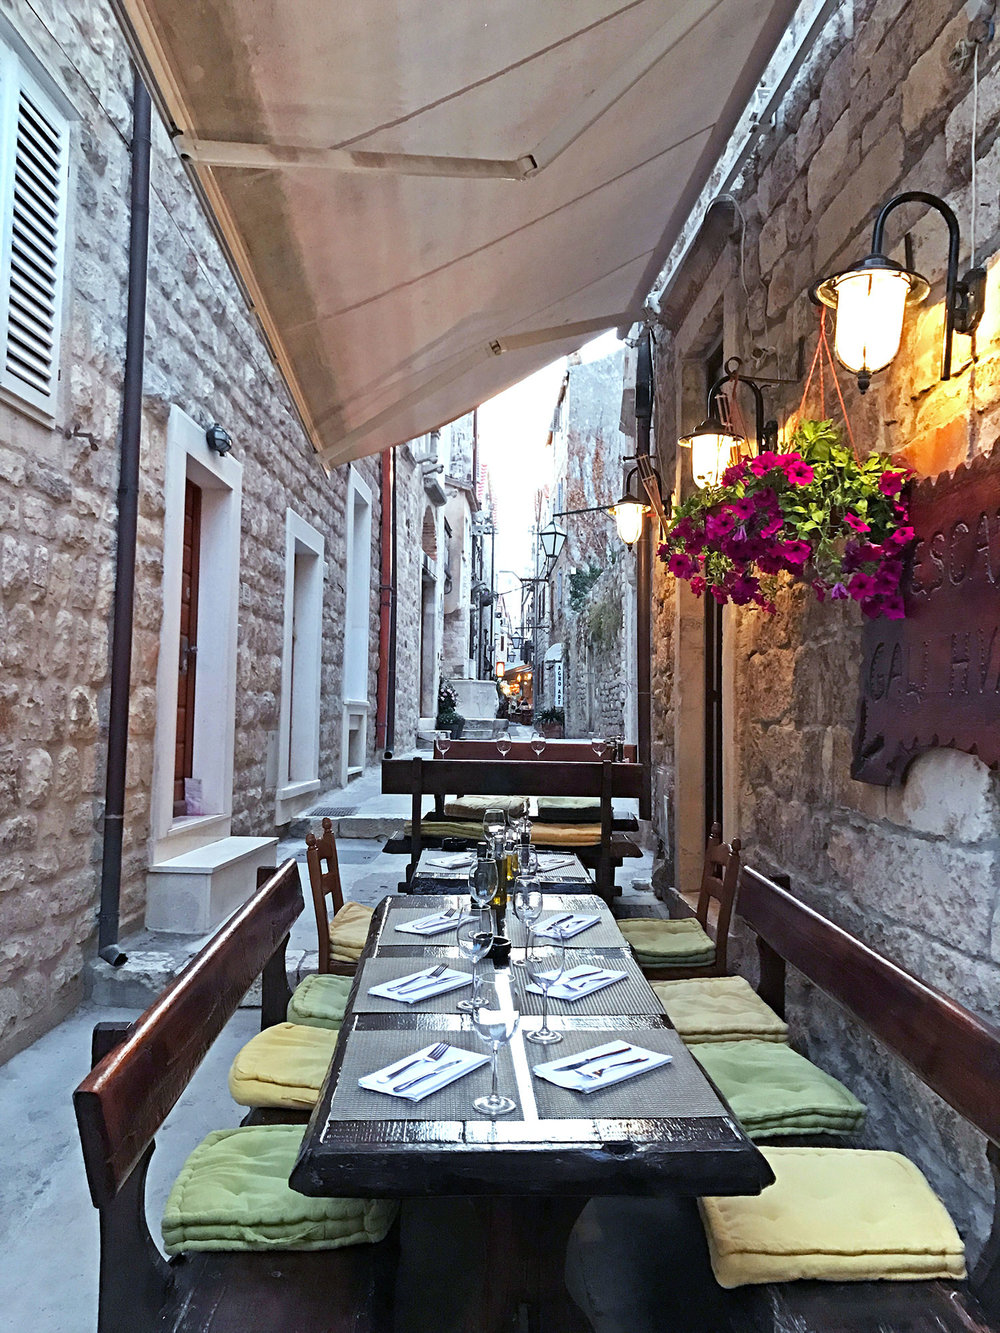 Hvar-Croatia-alley.jpg